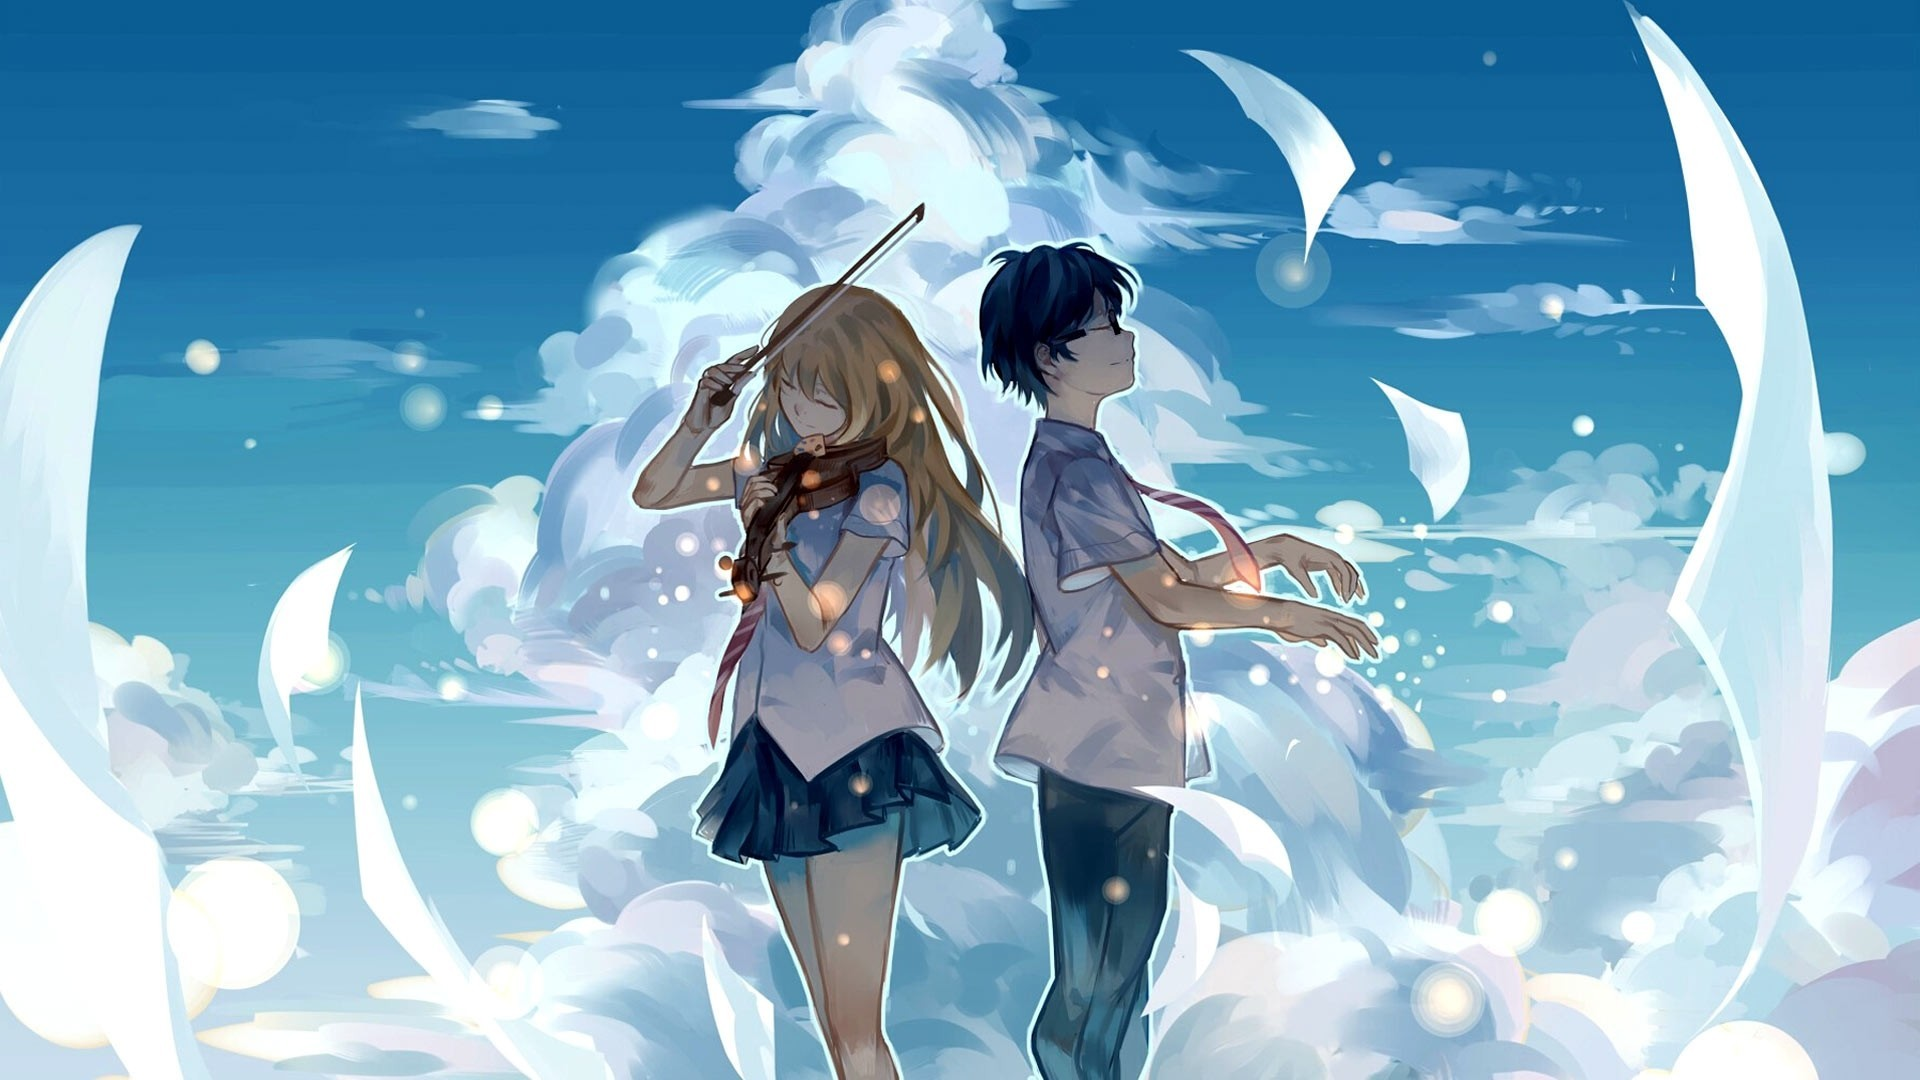 Res: 1920x1080,  The 25+ best Hd anime wallpapers ideas on Pinterest | Anime  wallpaper download,